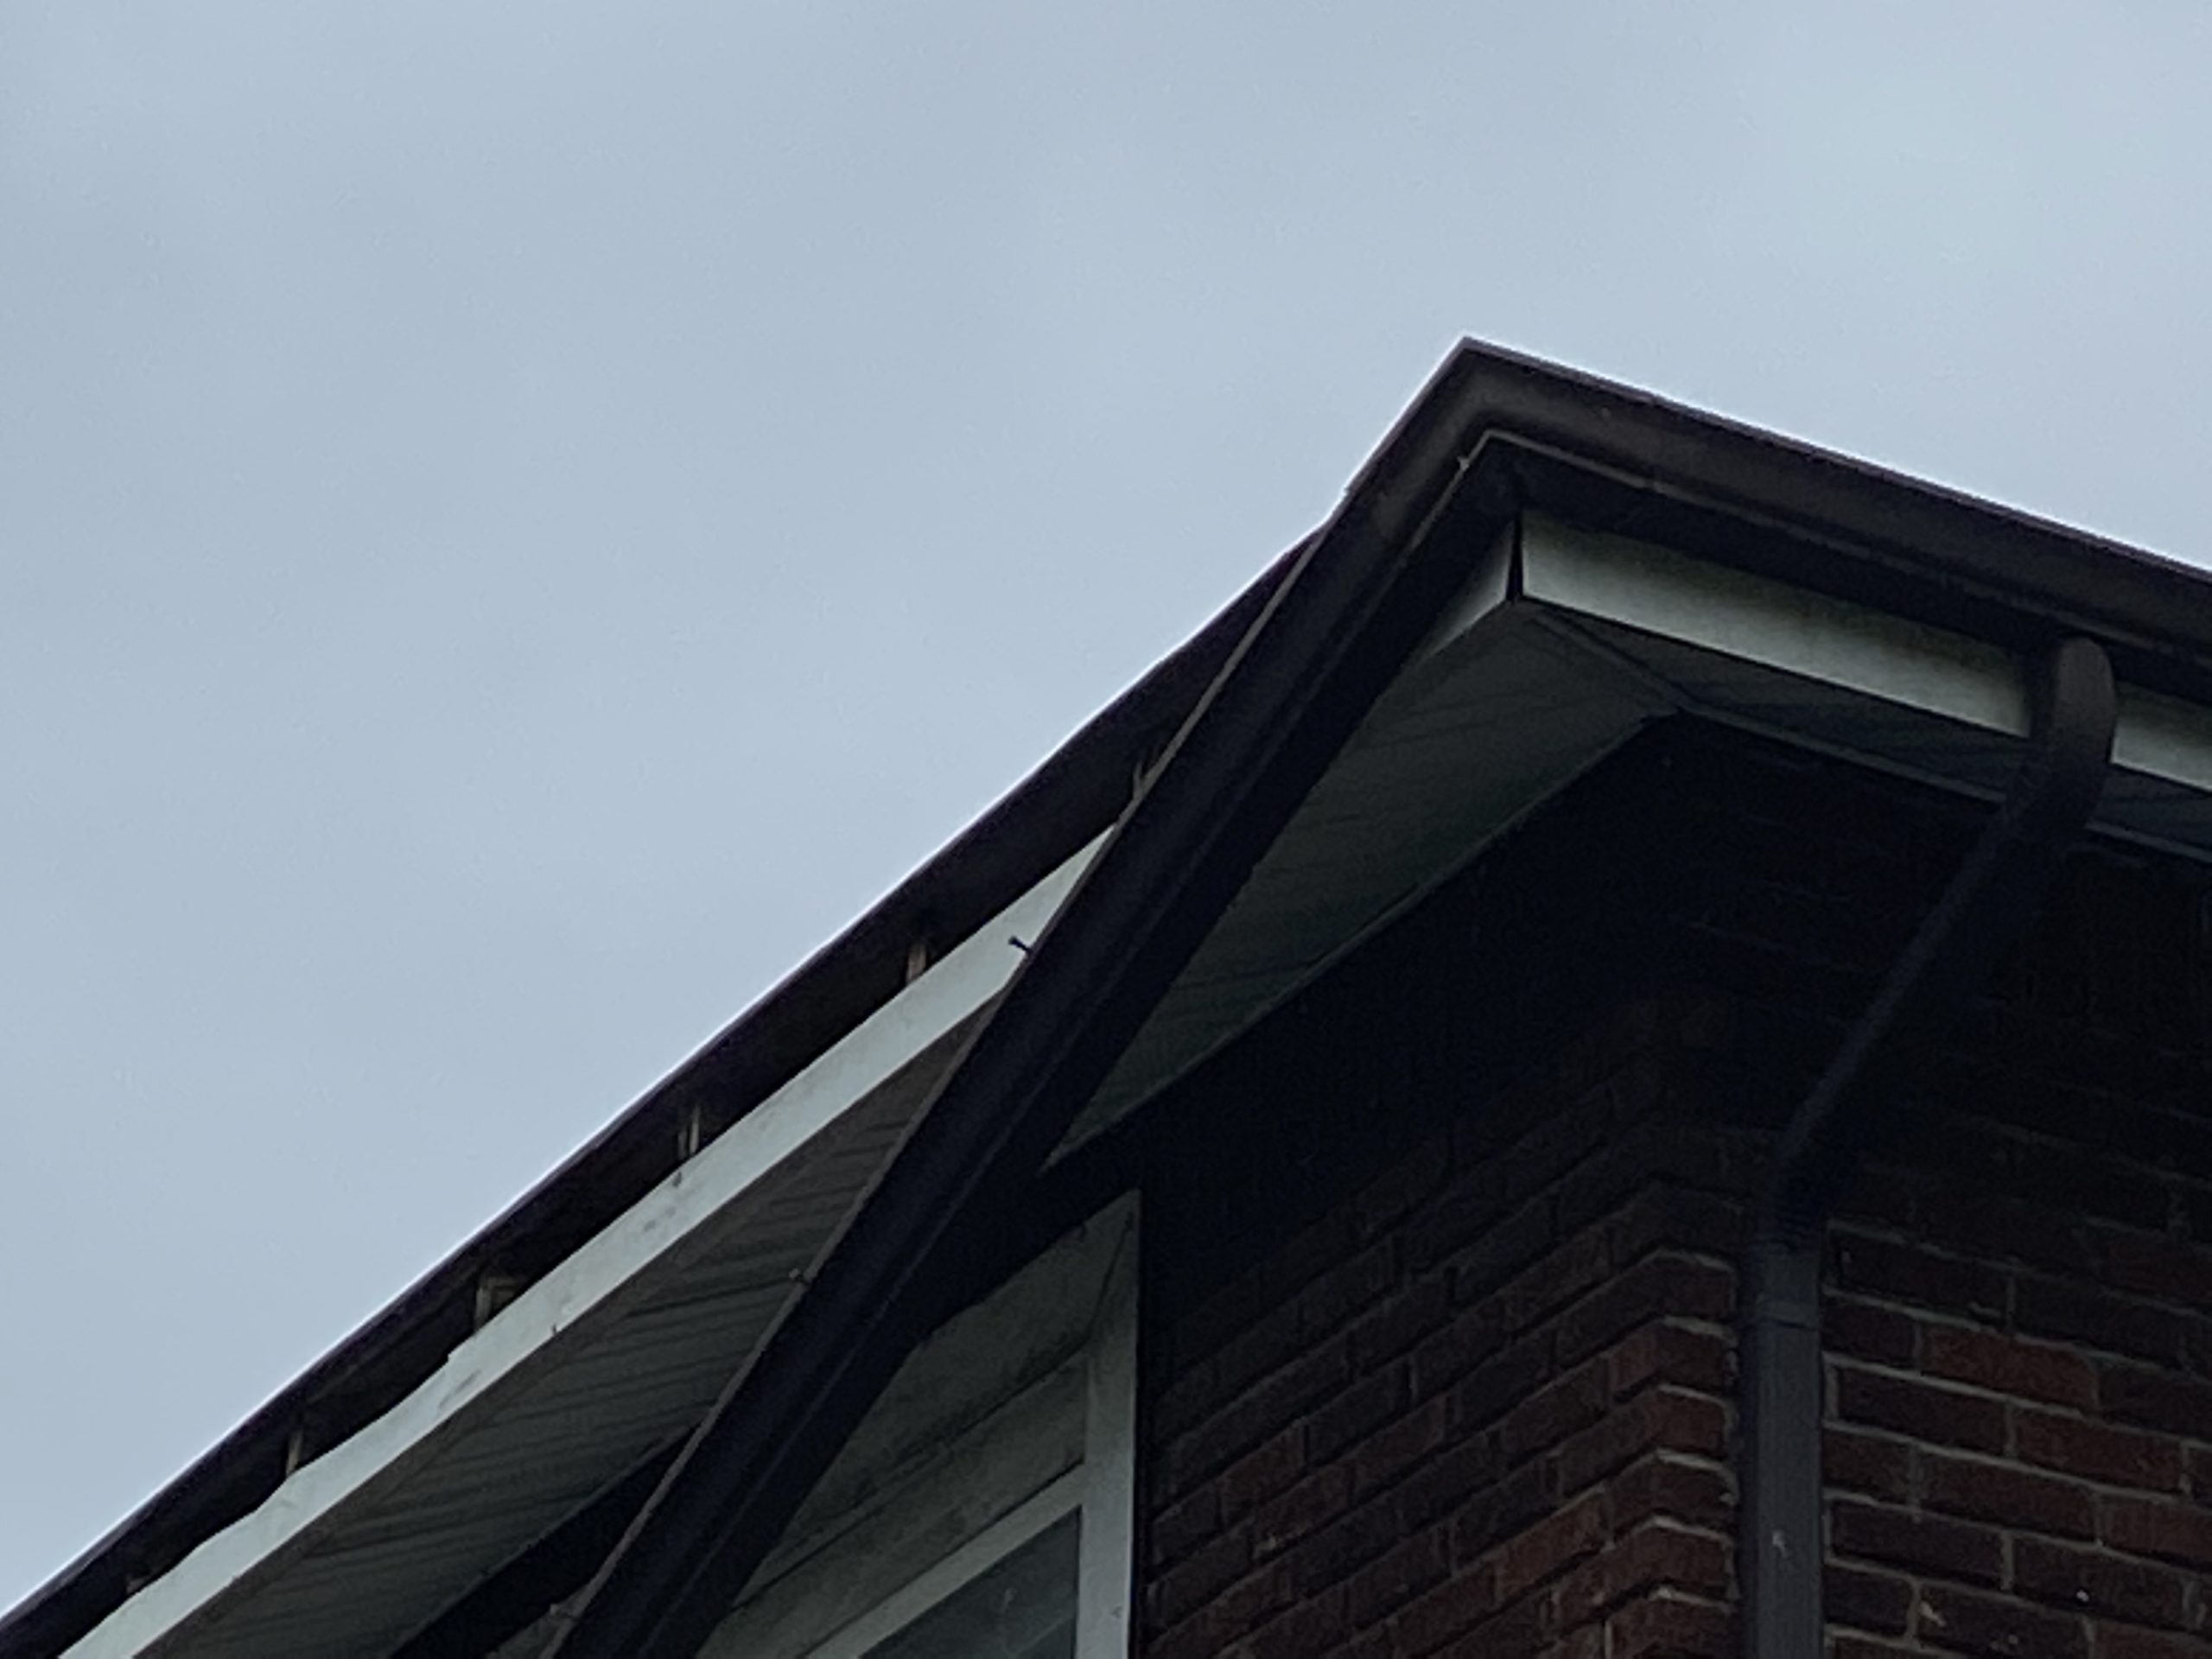 This is a piece of drip edge that is falling off the roof.